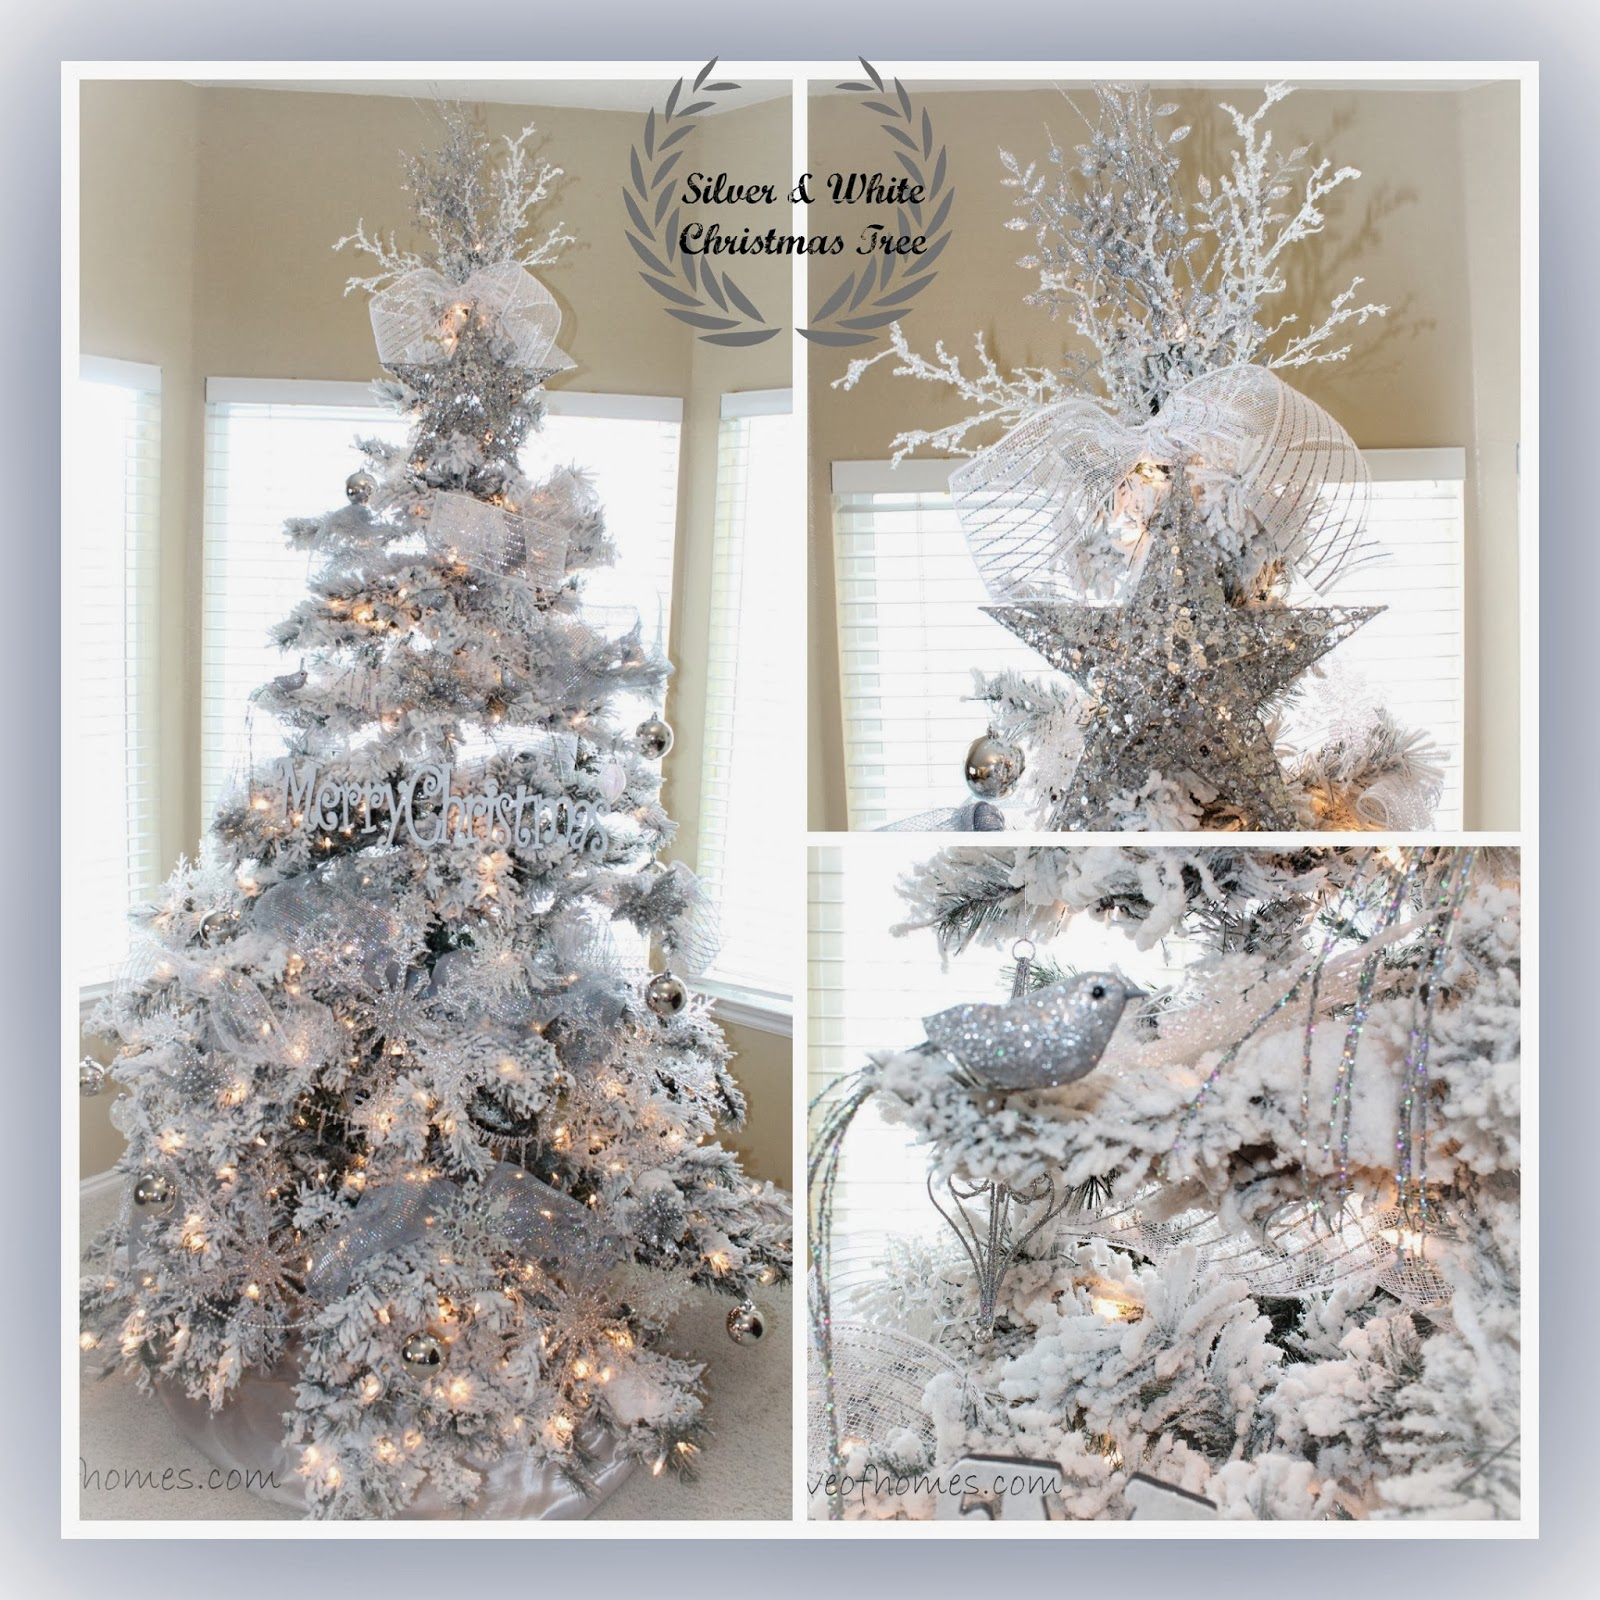 LOVE OF HOMES: Christmas Decor...A Silver & White Tree